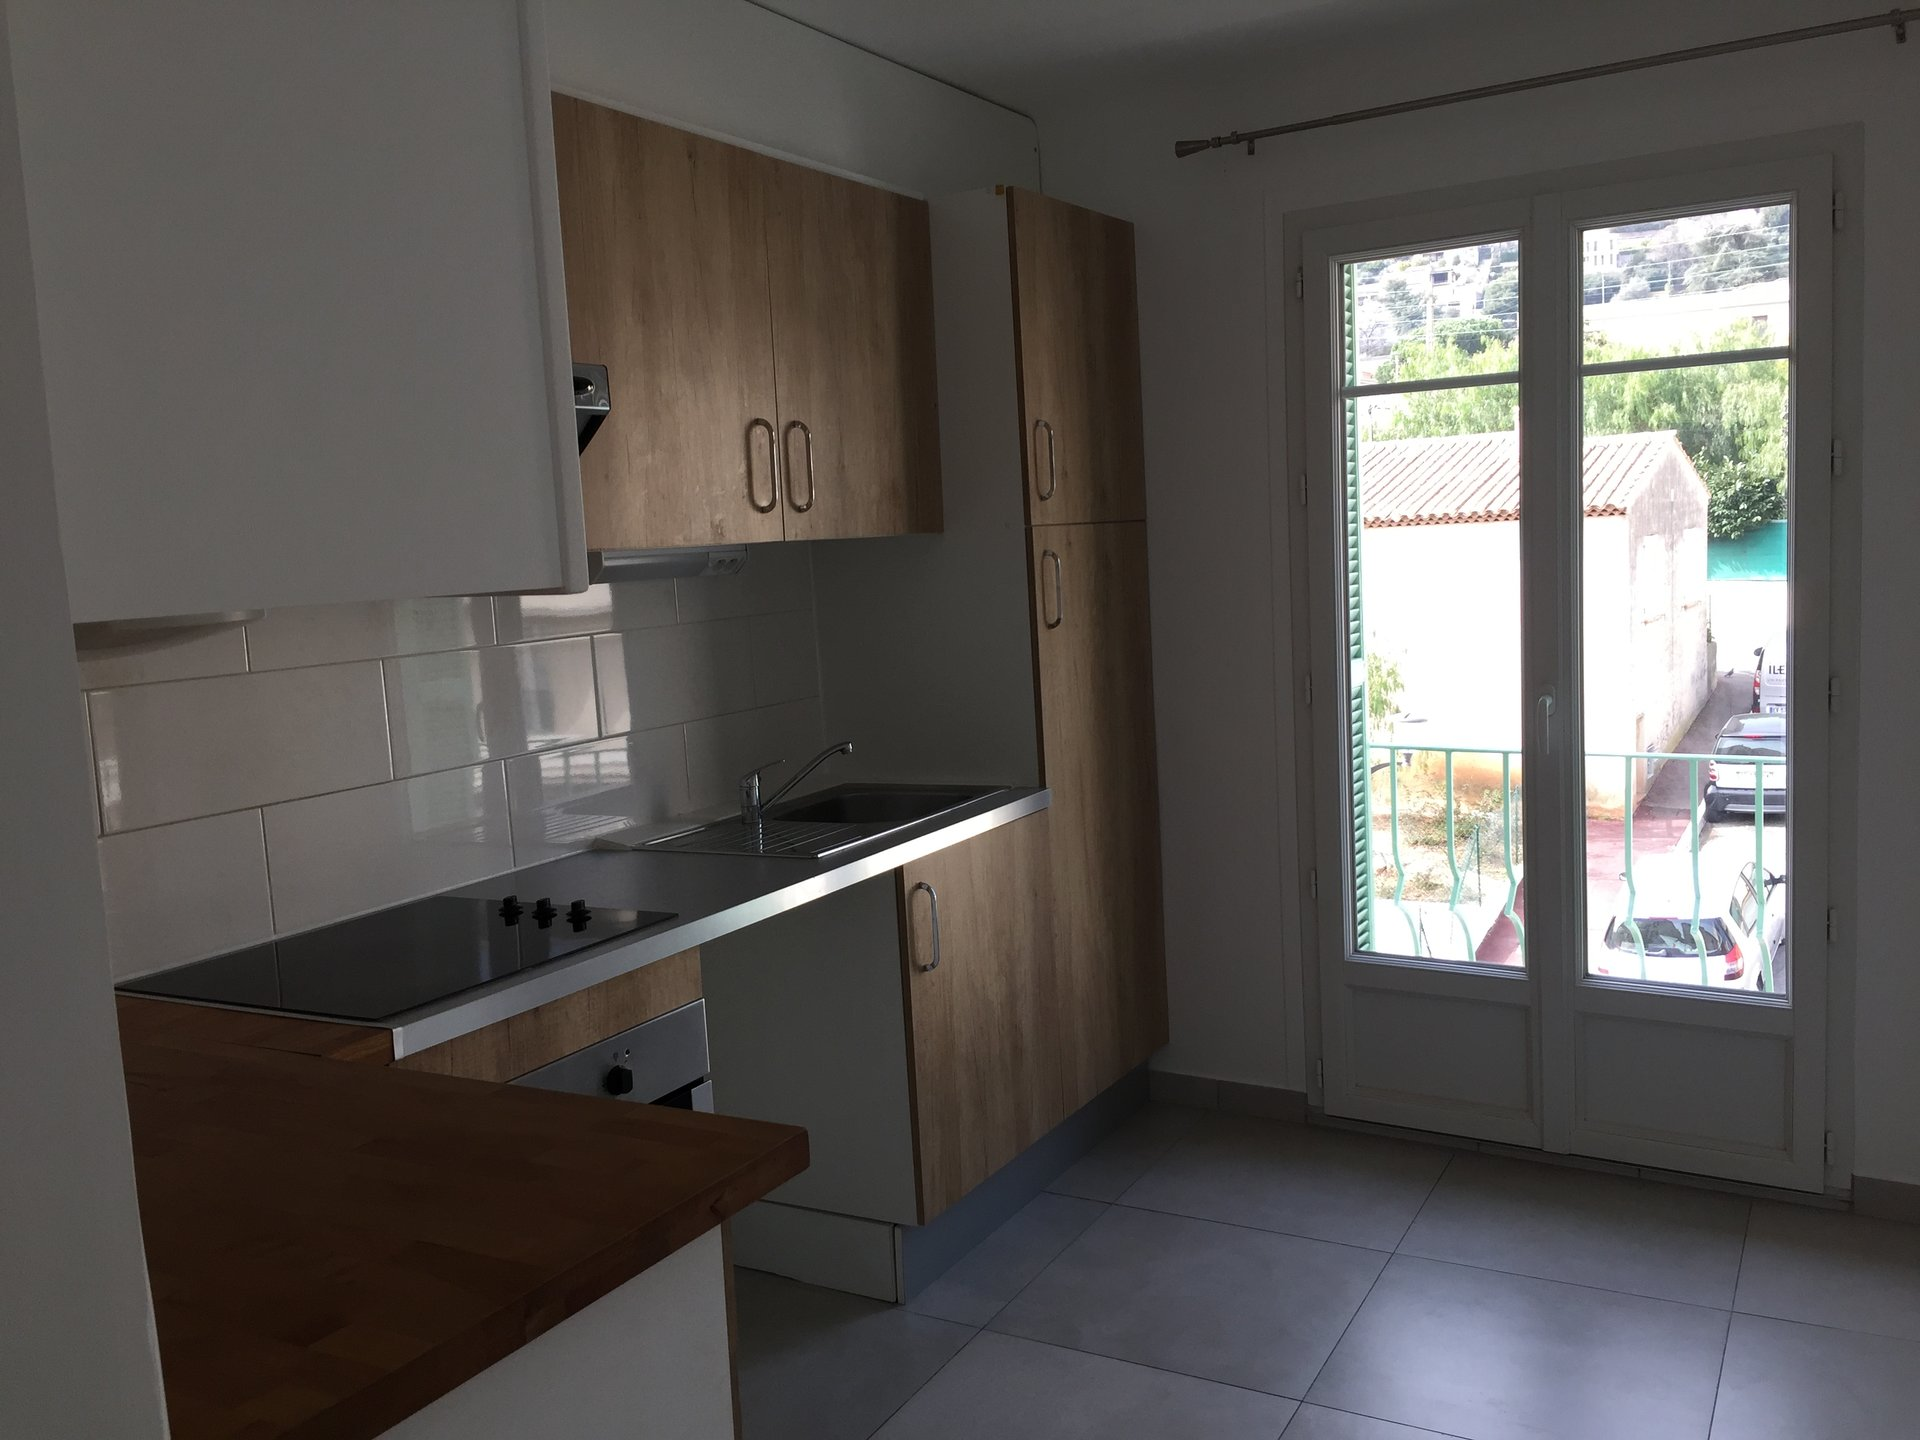 SAINT LAURENT DU VAR (06700) appartement F1 A LOUER